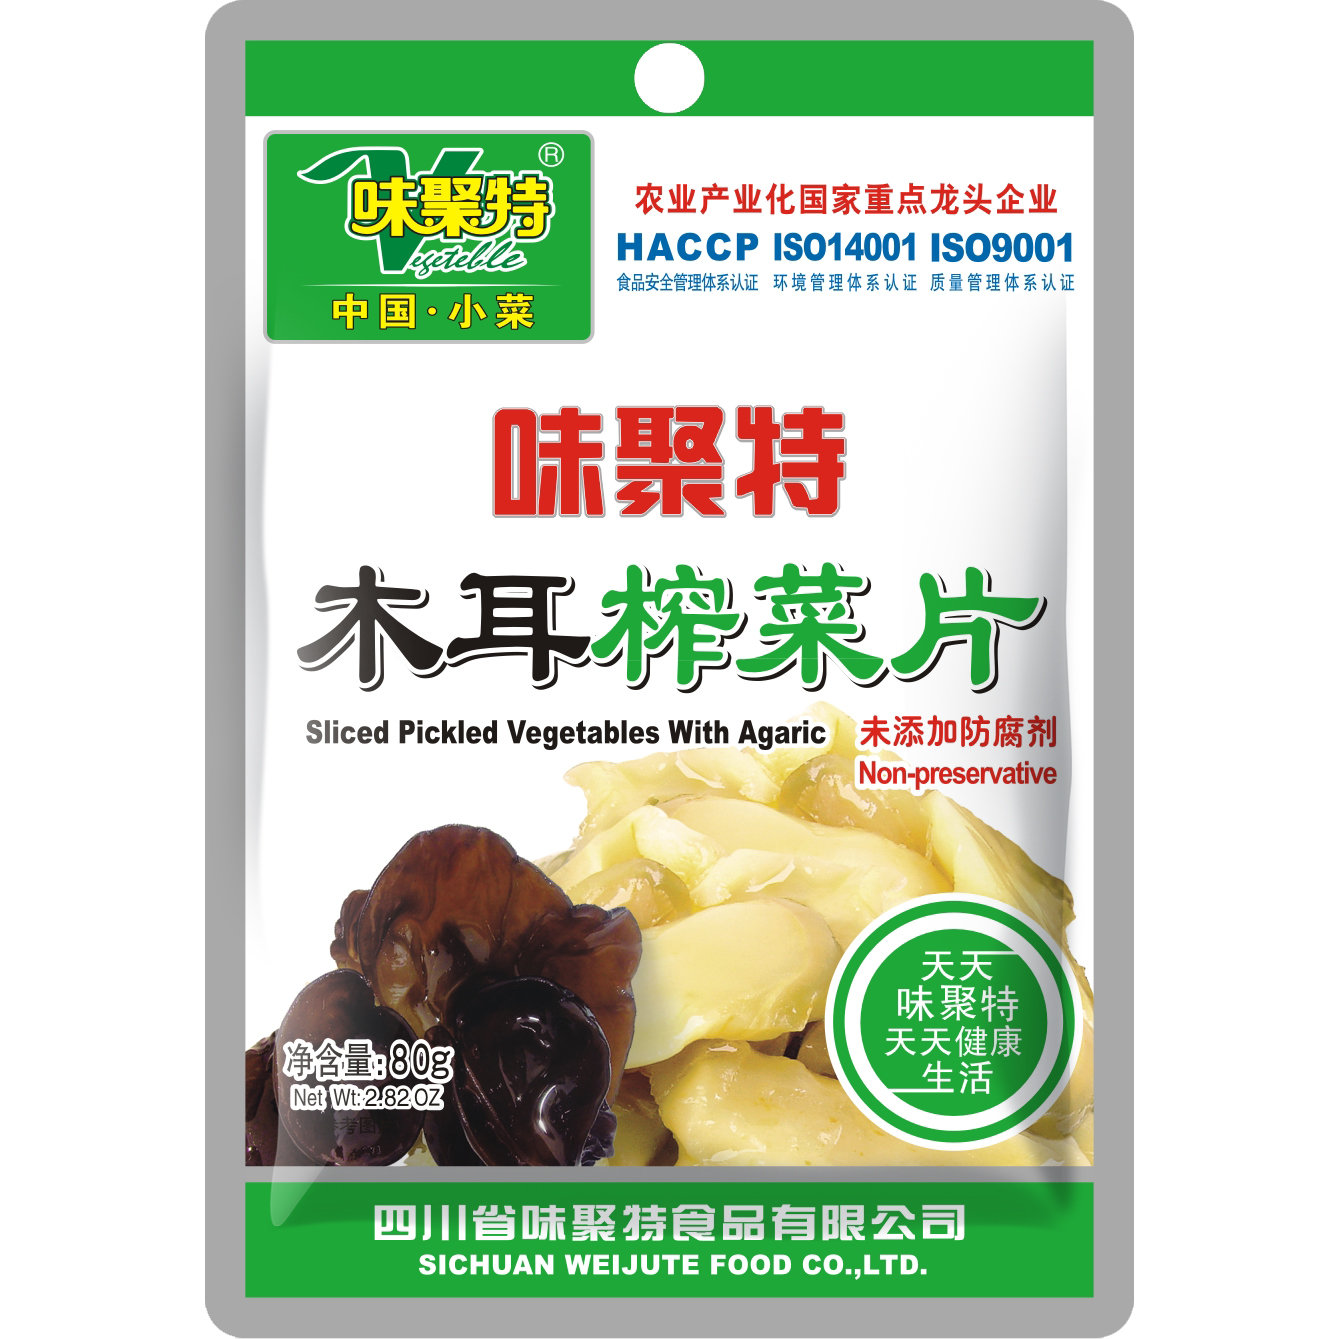 WJT Pickled Vegetables with Black Fungus 80g